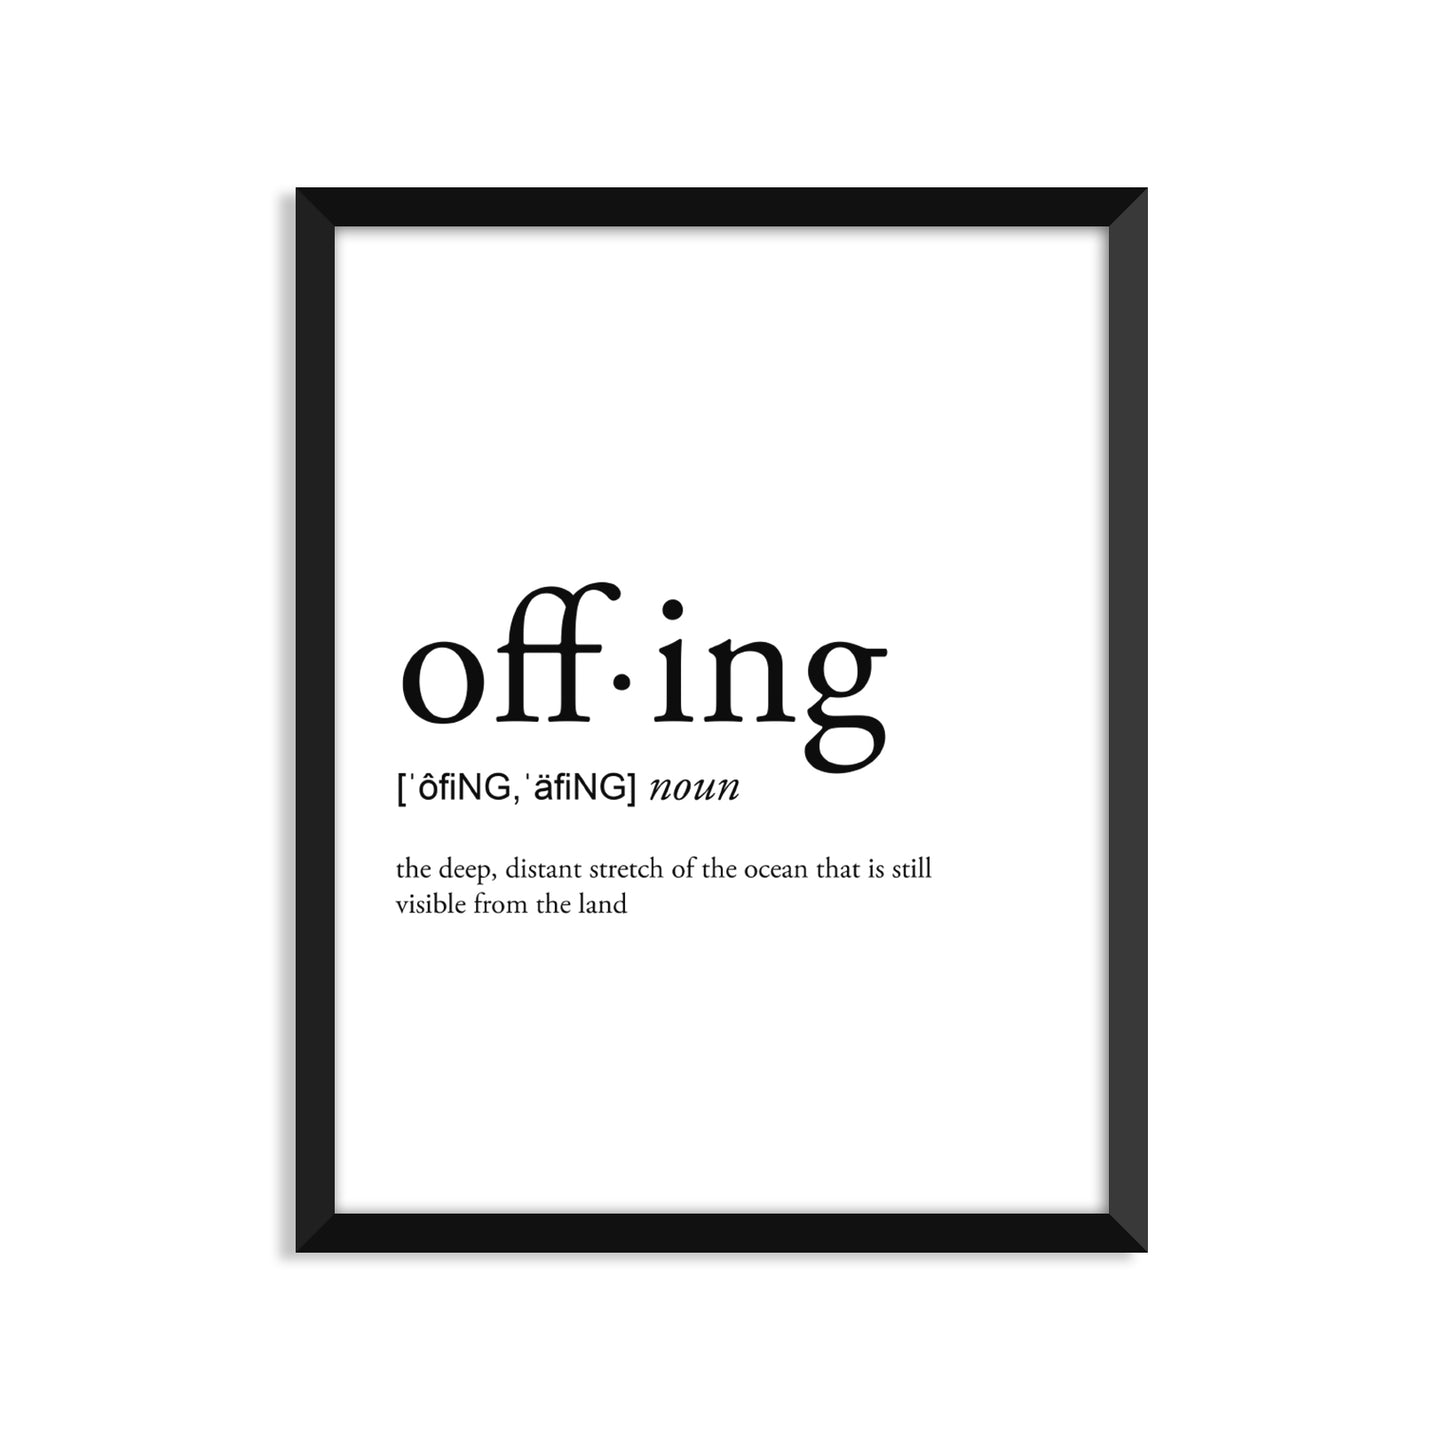 Offing Definition - Unframed Art Print Or Greeting Card